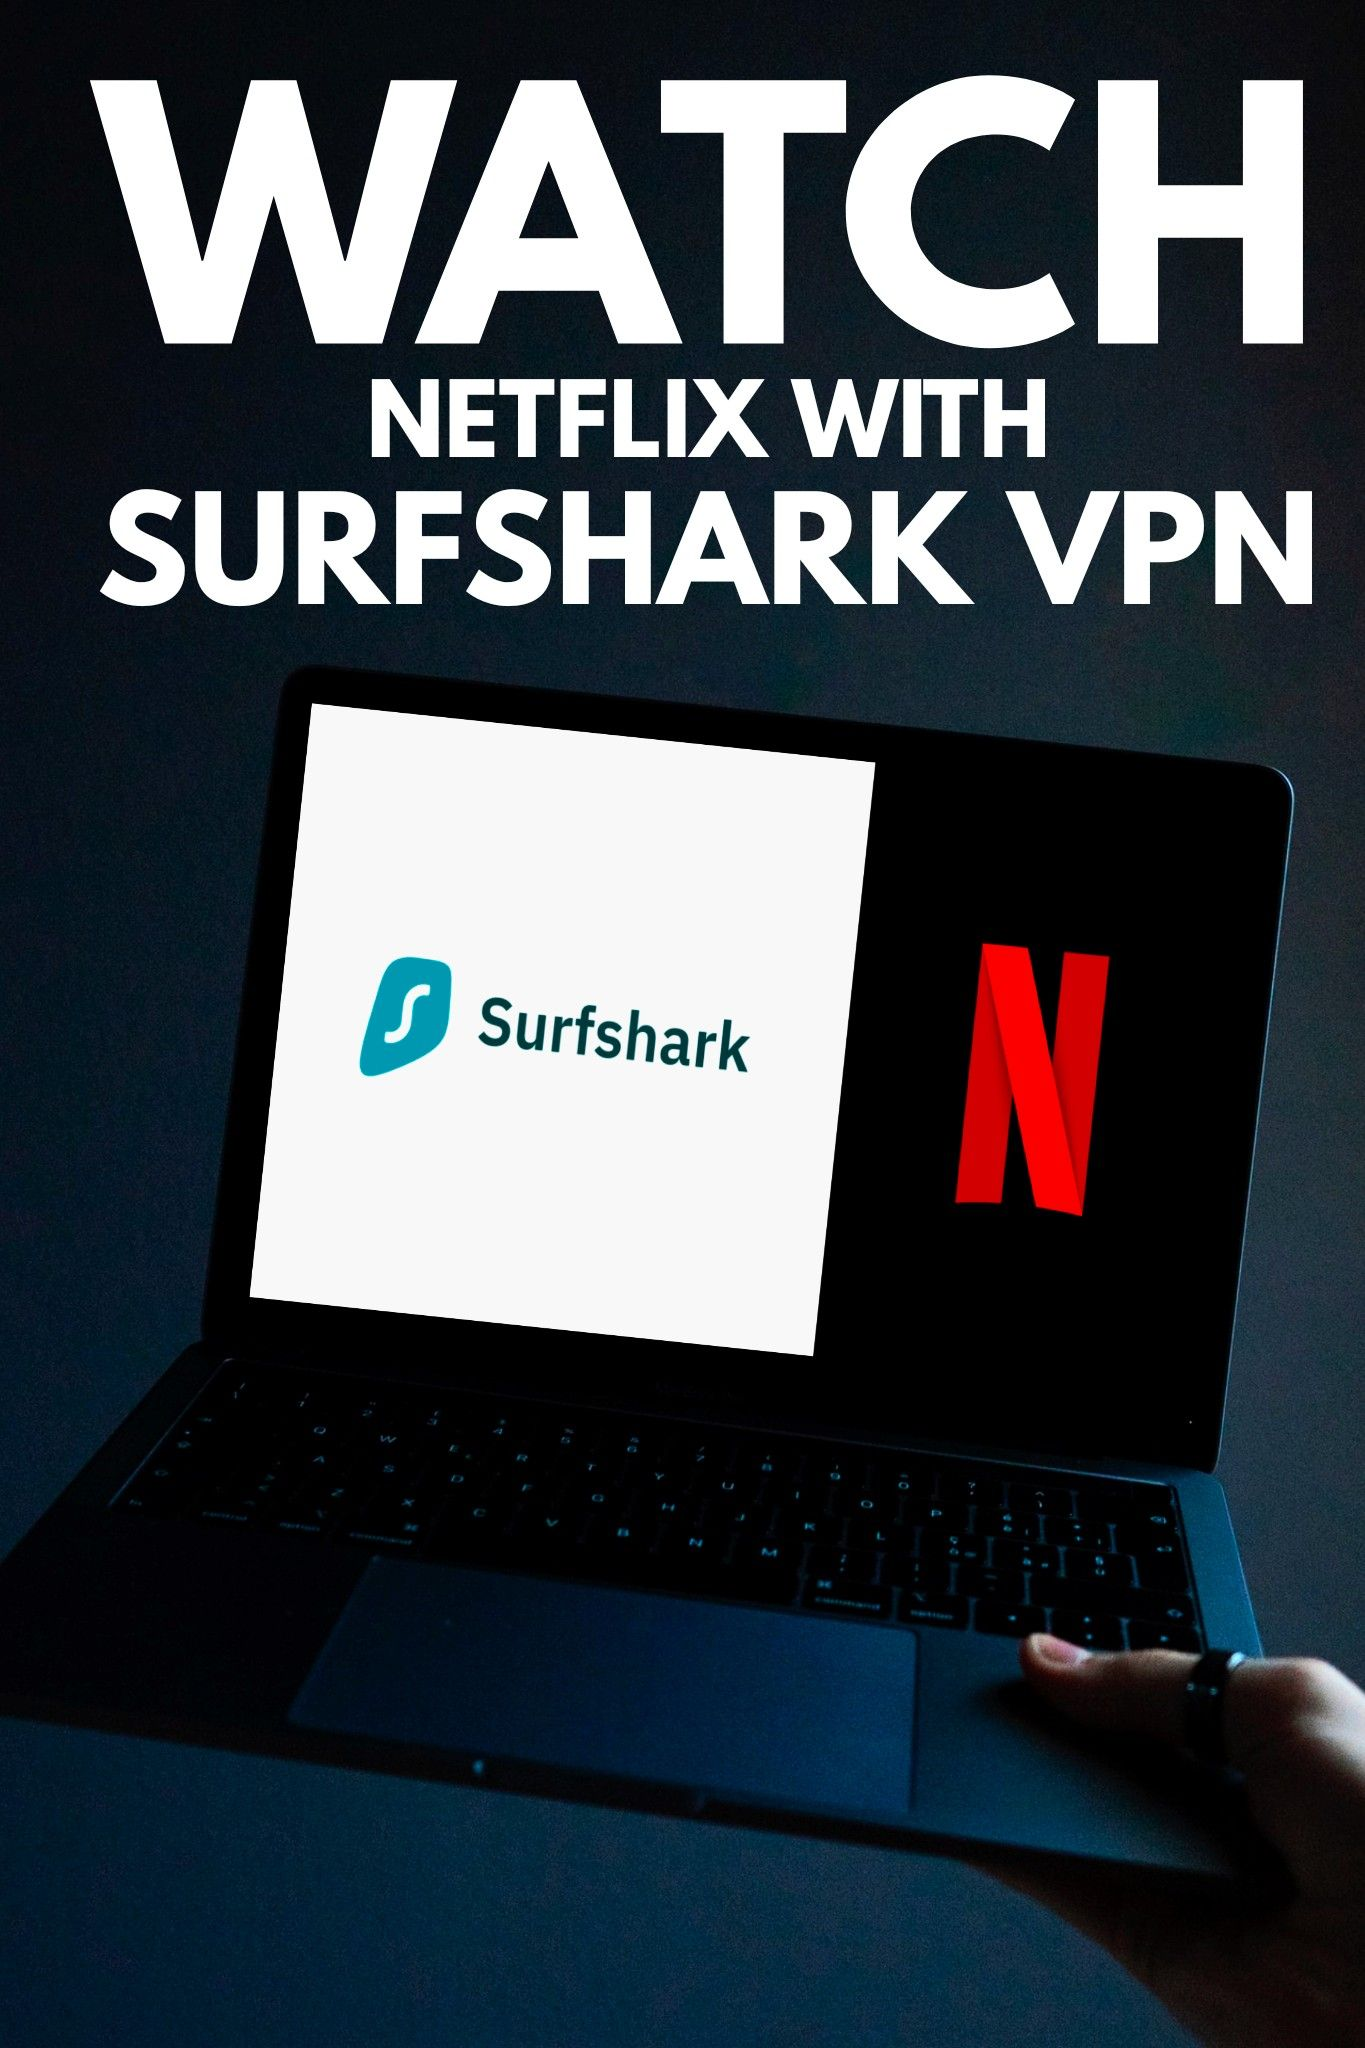 Can I Watch Netflix Using A Vpn